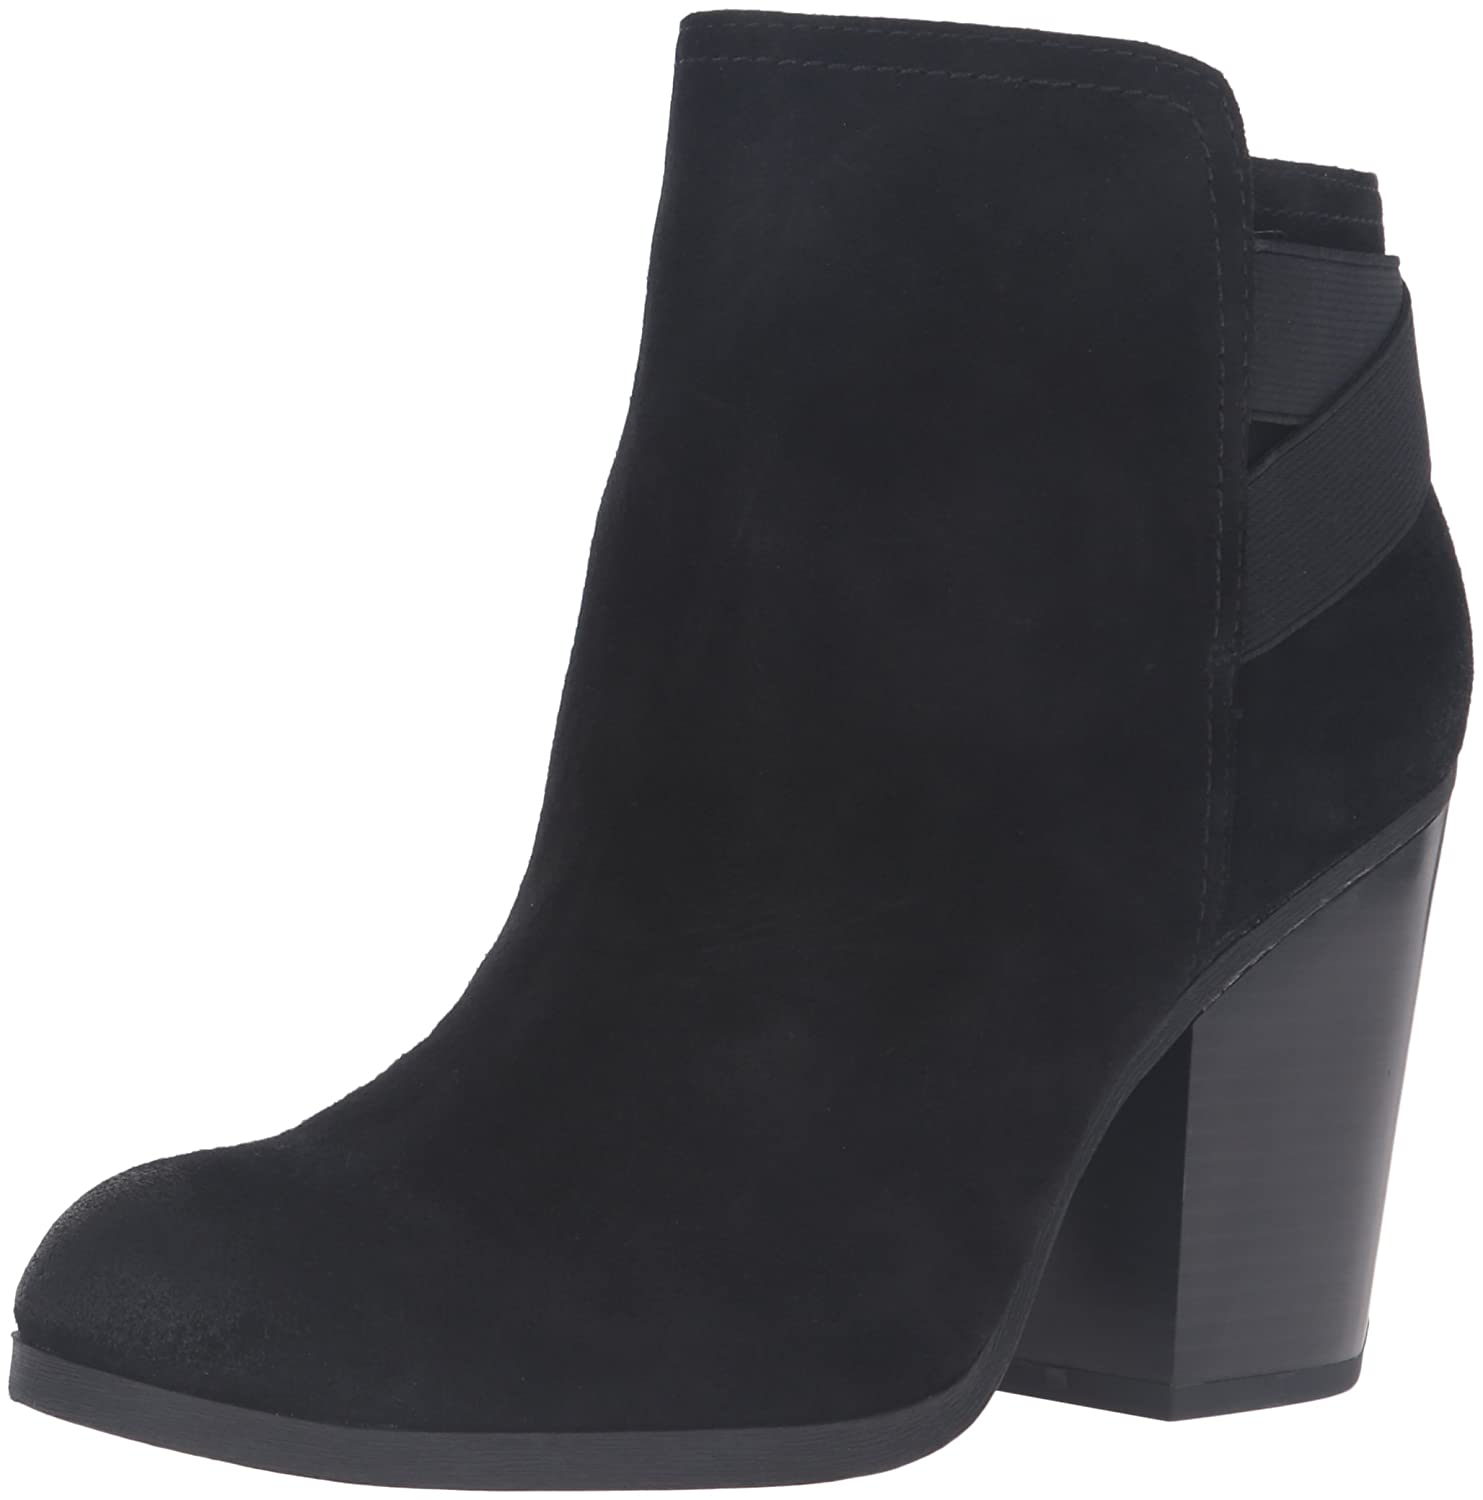 Kenneth Cole REACTION Women's Might Make It Ankle Bootie B01G4HNWPC 11 B(M) US|Black